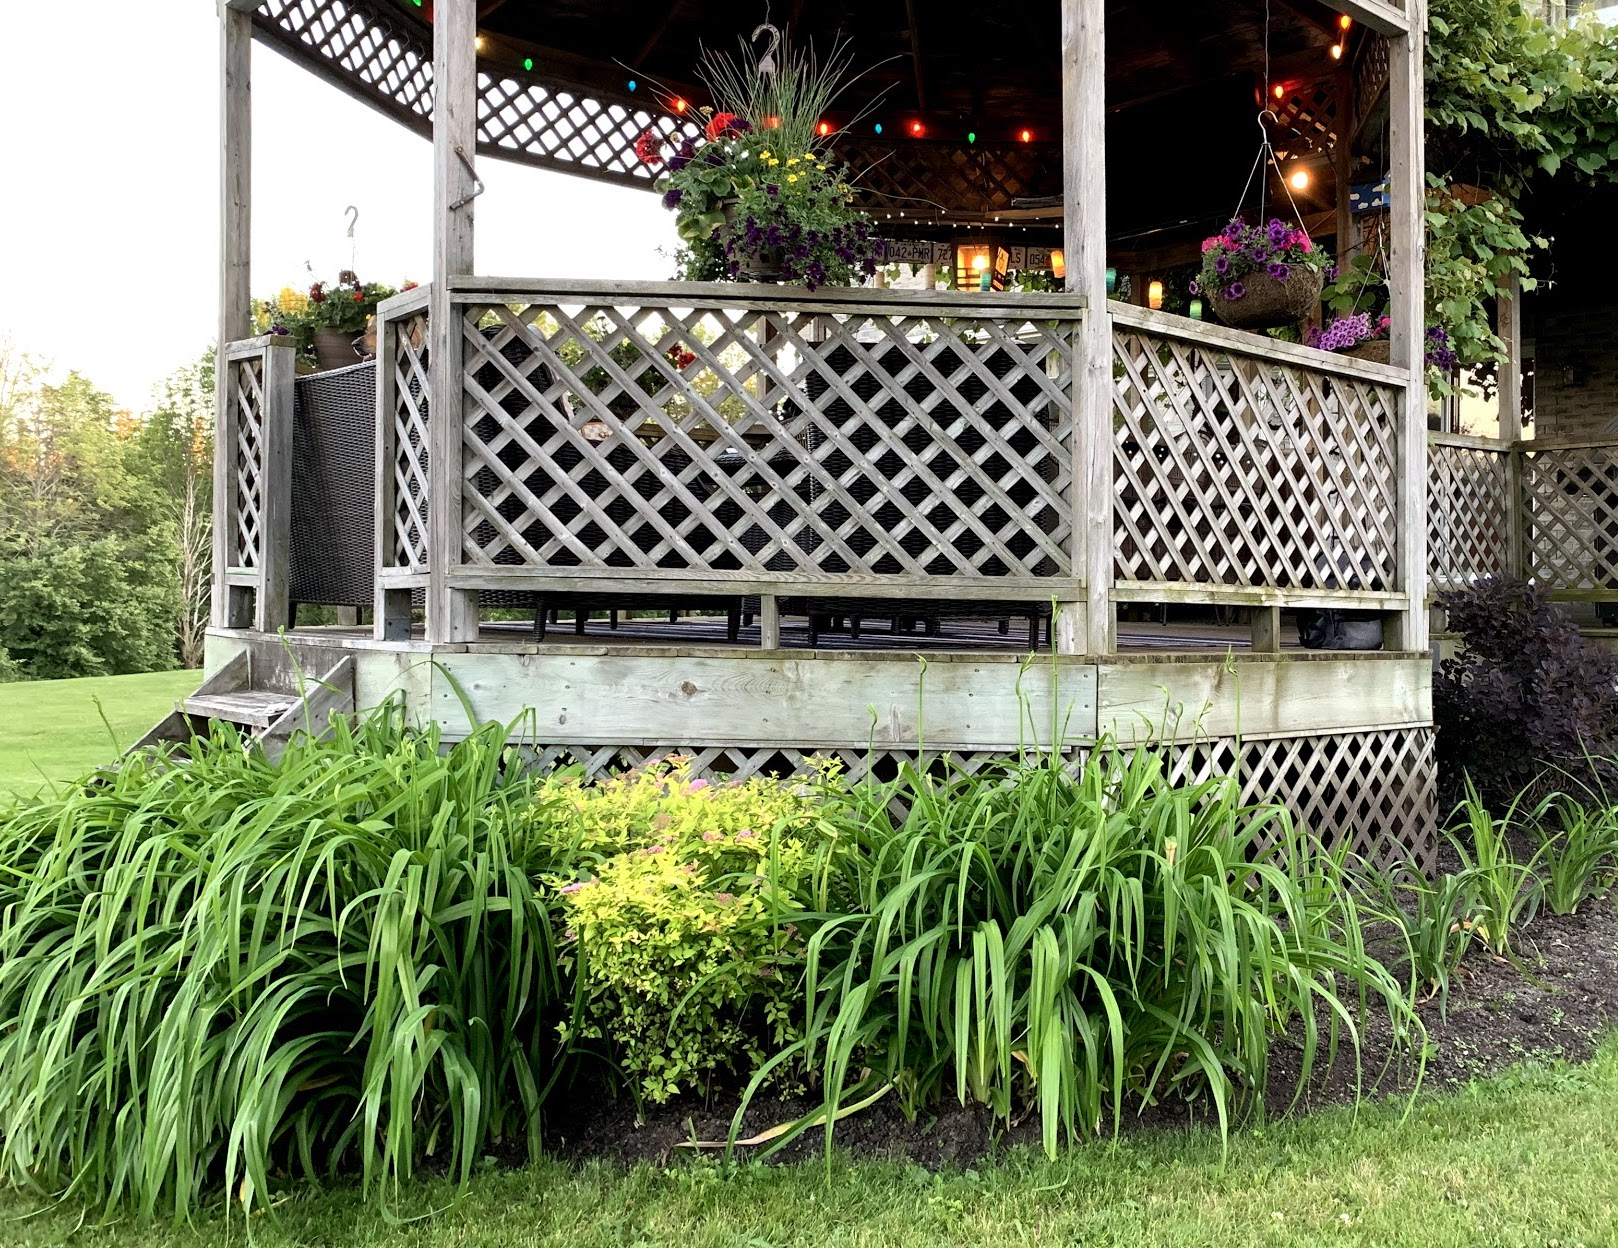 plans planted in black mulch in between grass and wood gazebo